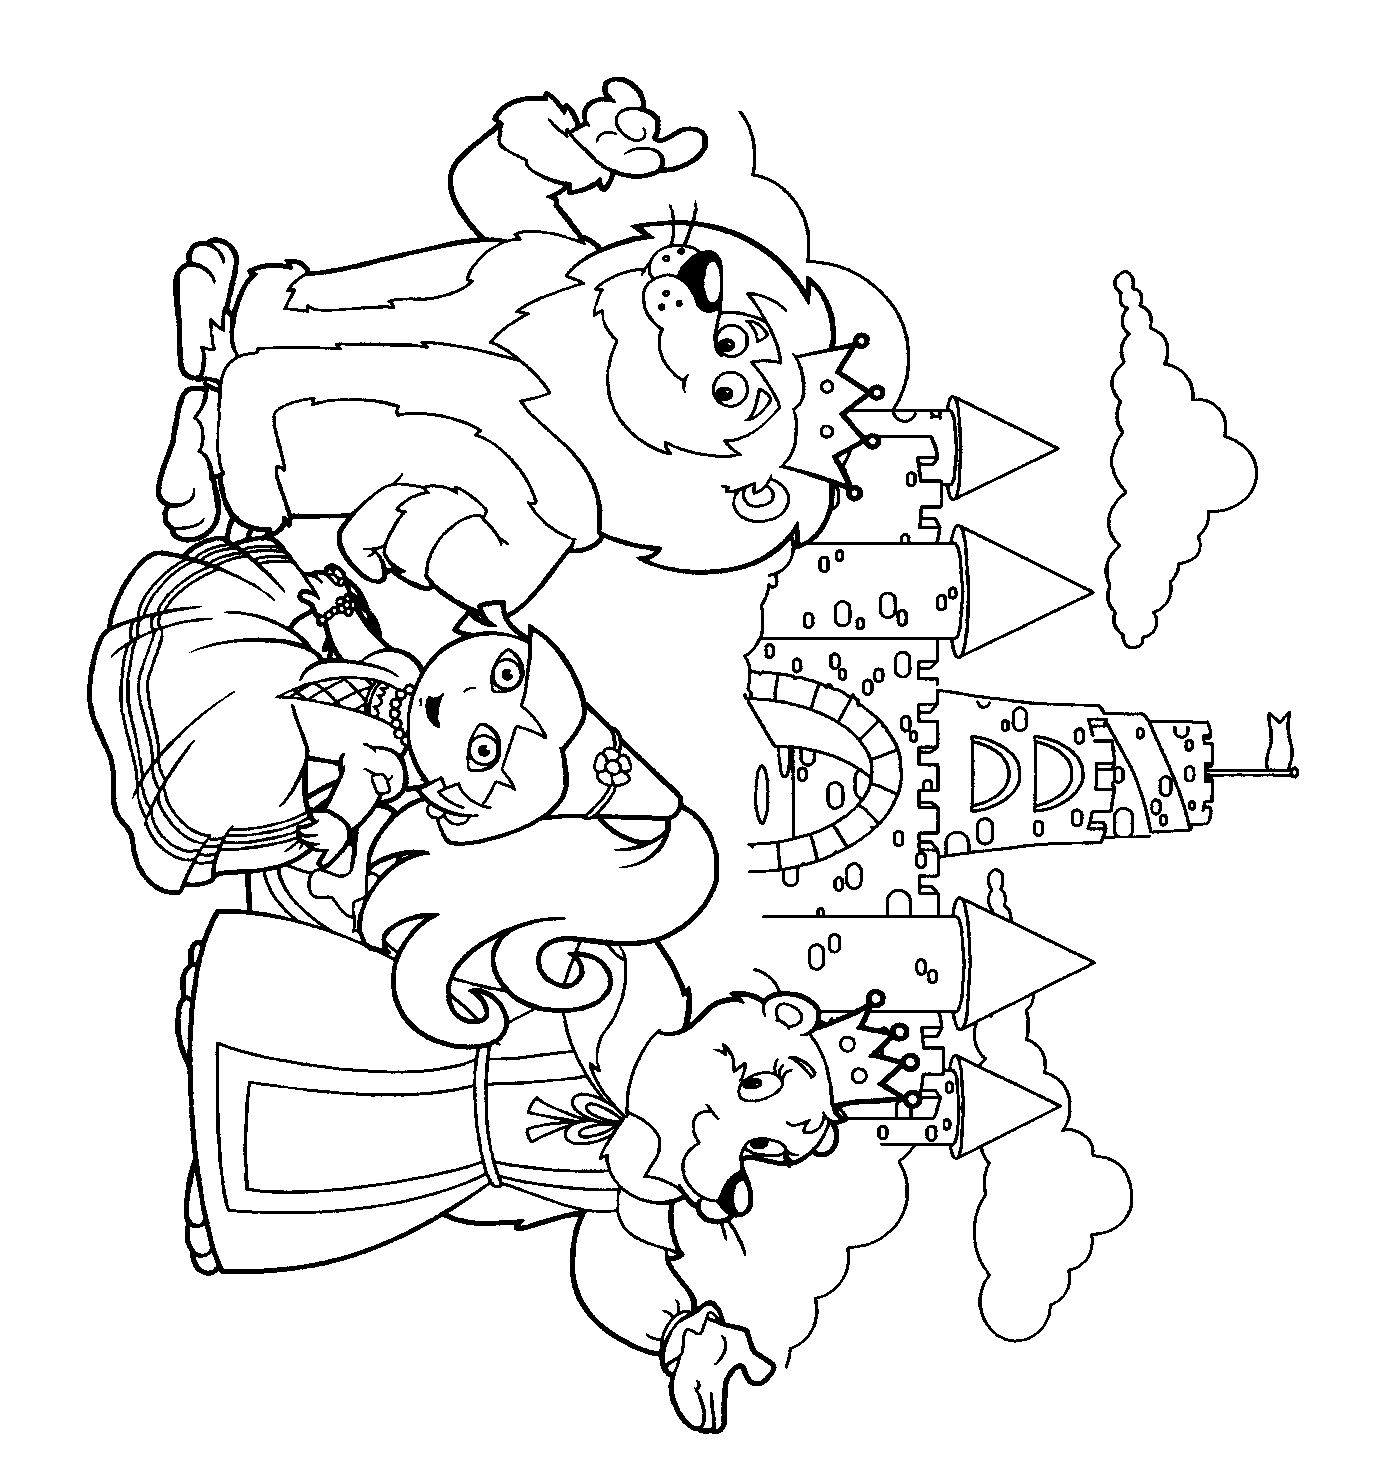 Dora The Explorer 2 Coloring Pages Coloring Home Explorer Coloring Pages